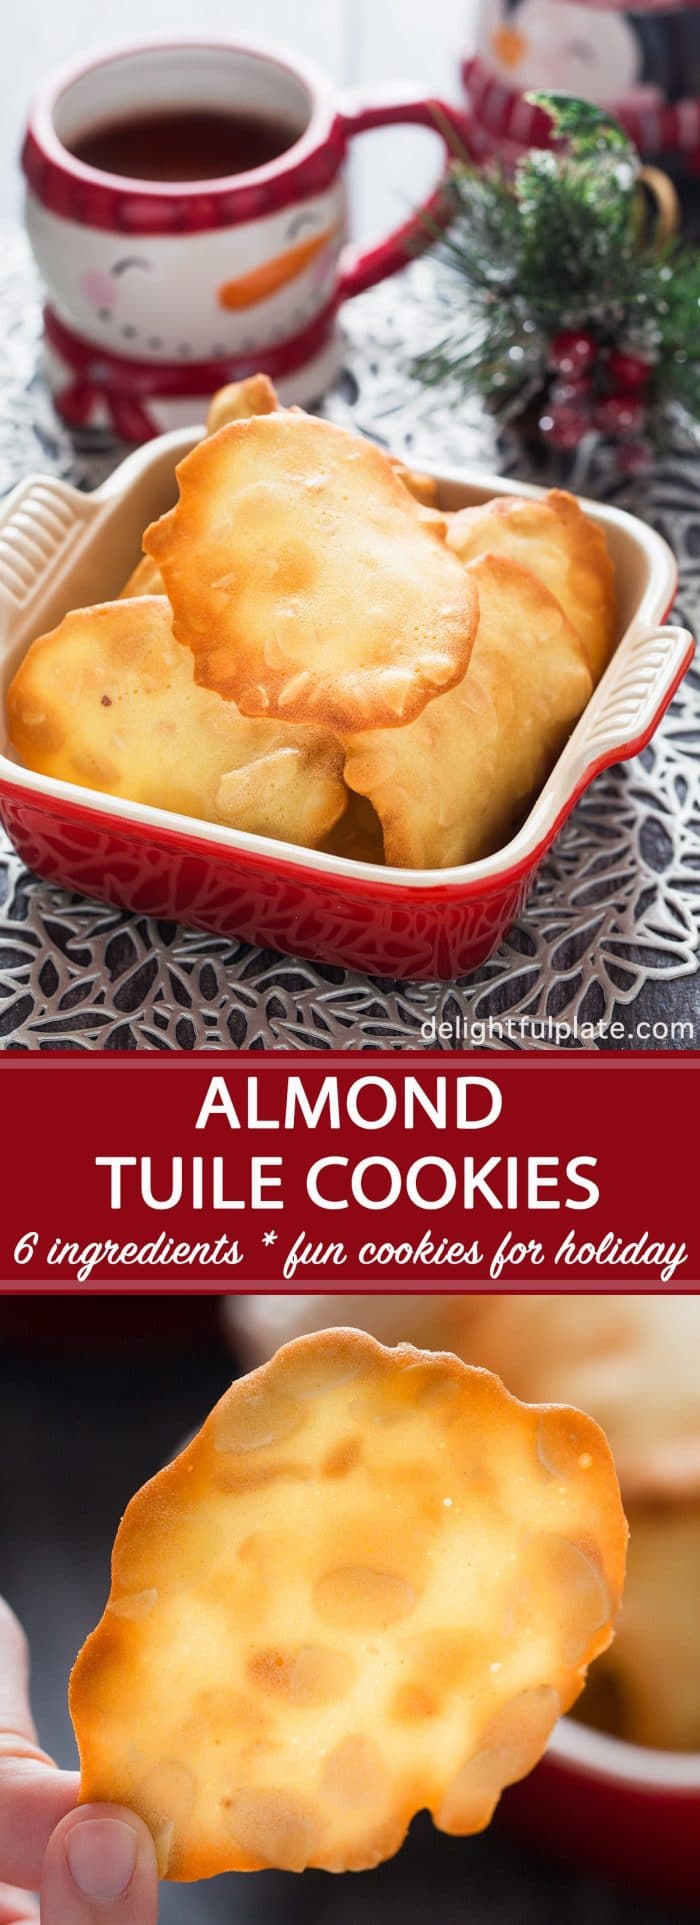 Almond tuile is an elegant French cookie. With just five simple pantry ingredients, you can easily make these crisp, buttery and nutty cookies. They are perfect as everyday cookies as well as cookies for special occasions.